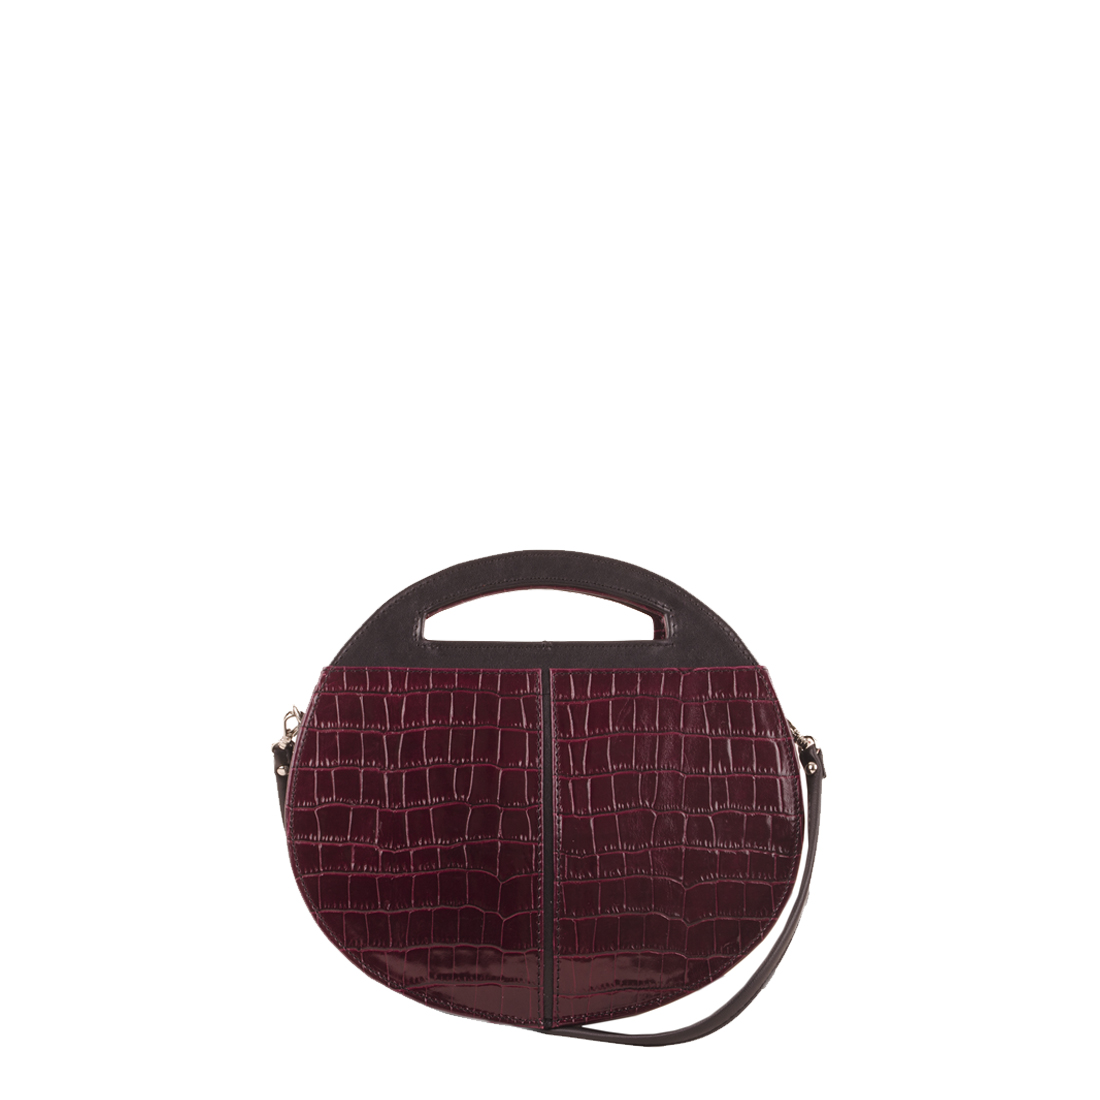 Olivia Burgundy Crocodile Print Leather Shoulder Bag